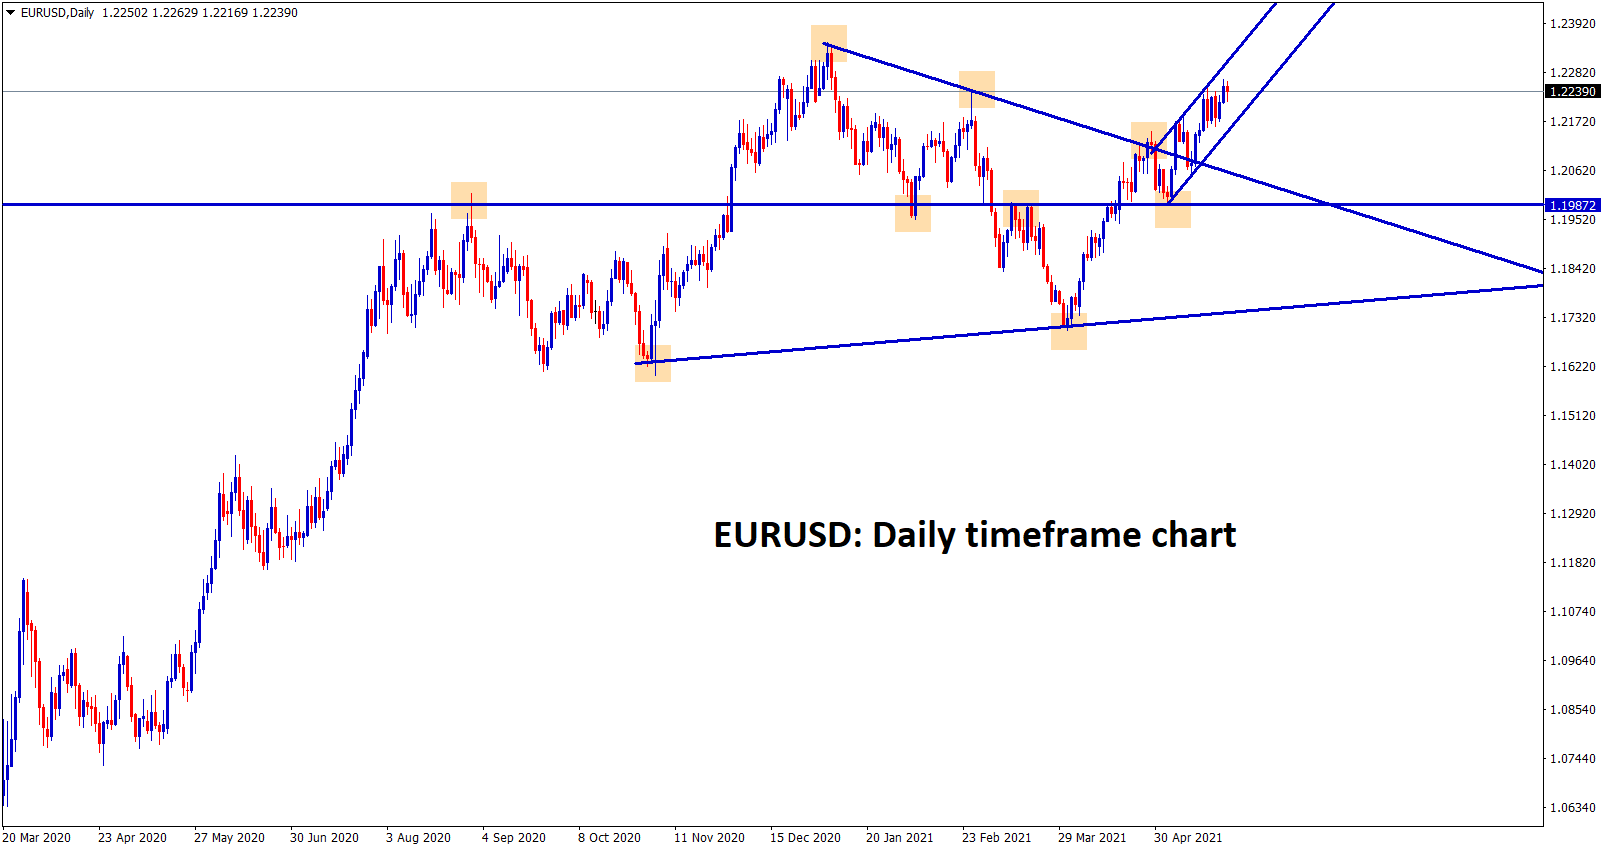 EURUSD has broken the top of the symmetrical triangle and moving now in an Ascending channel range